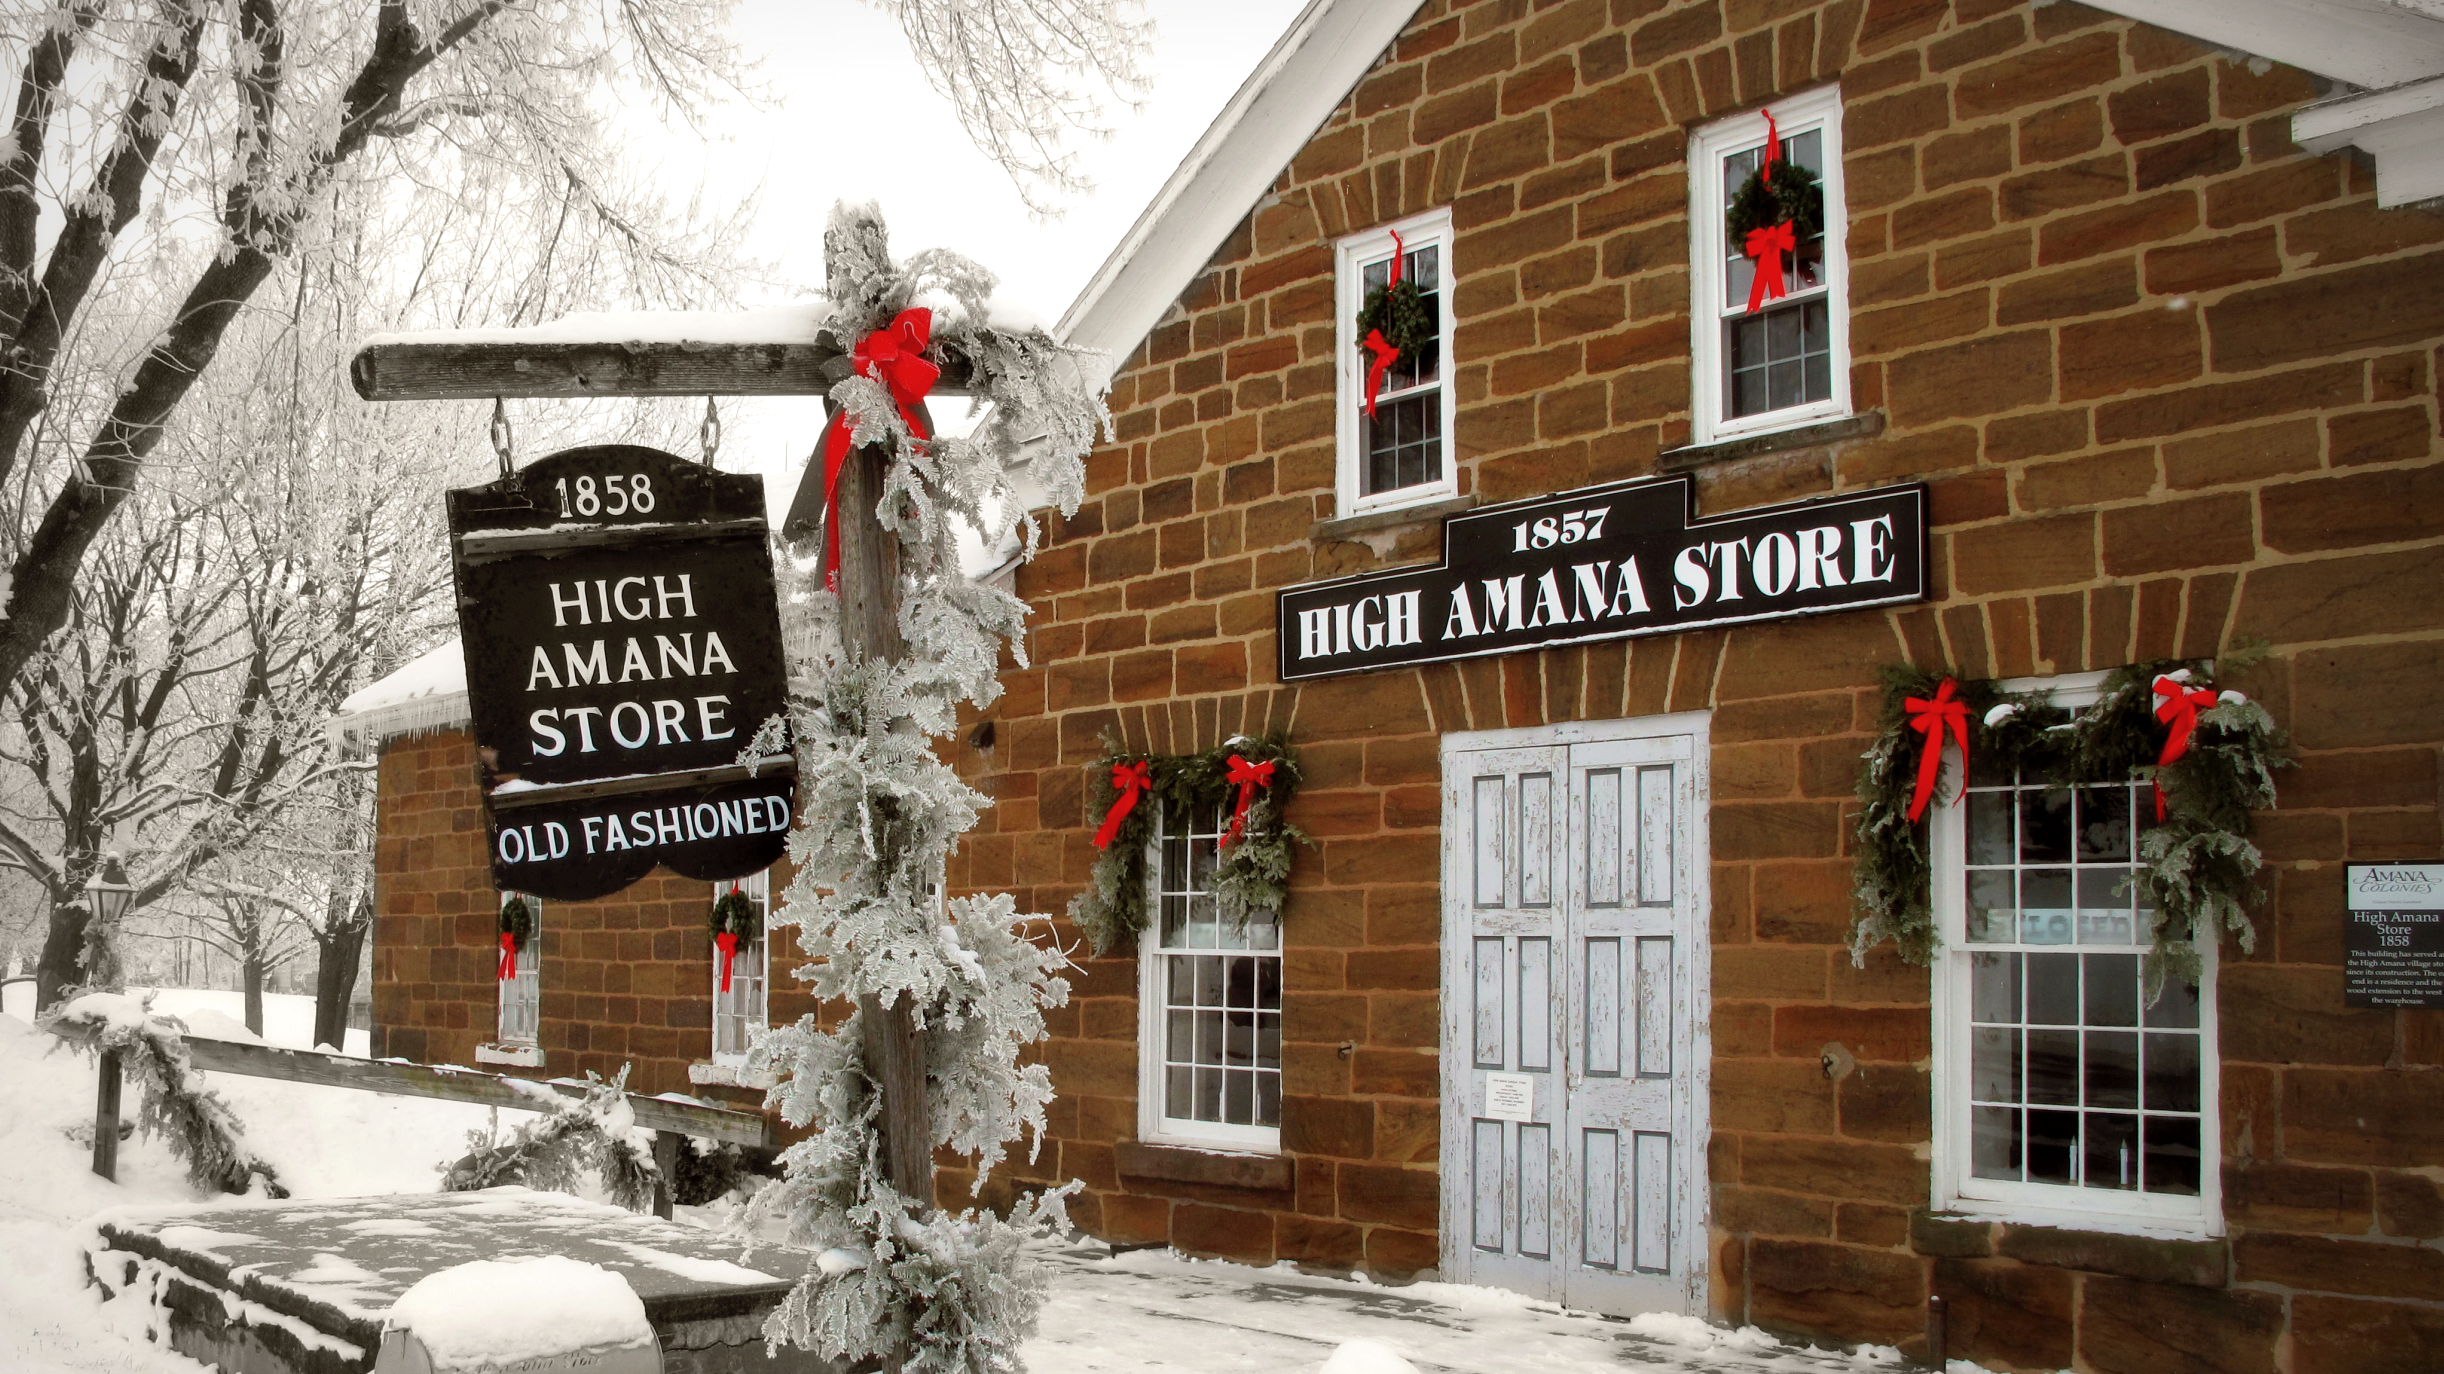 exterior of the high amana store after snow